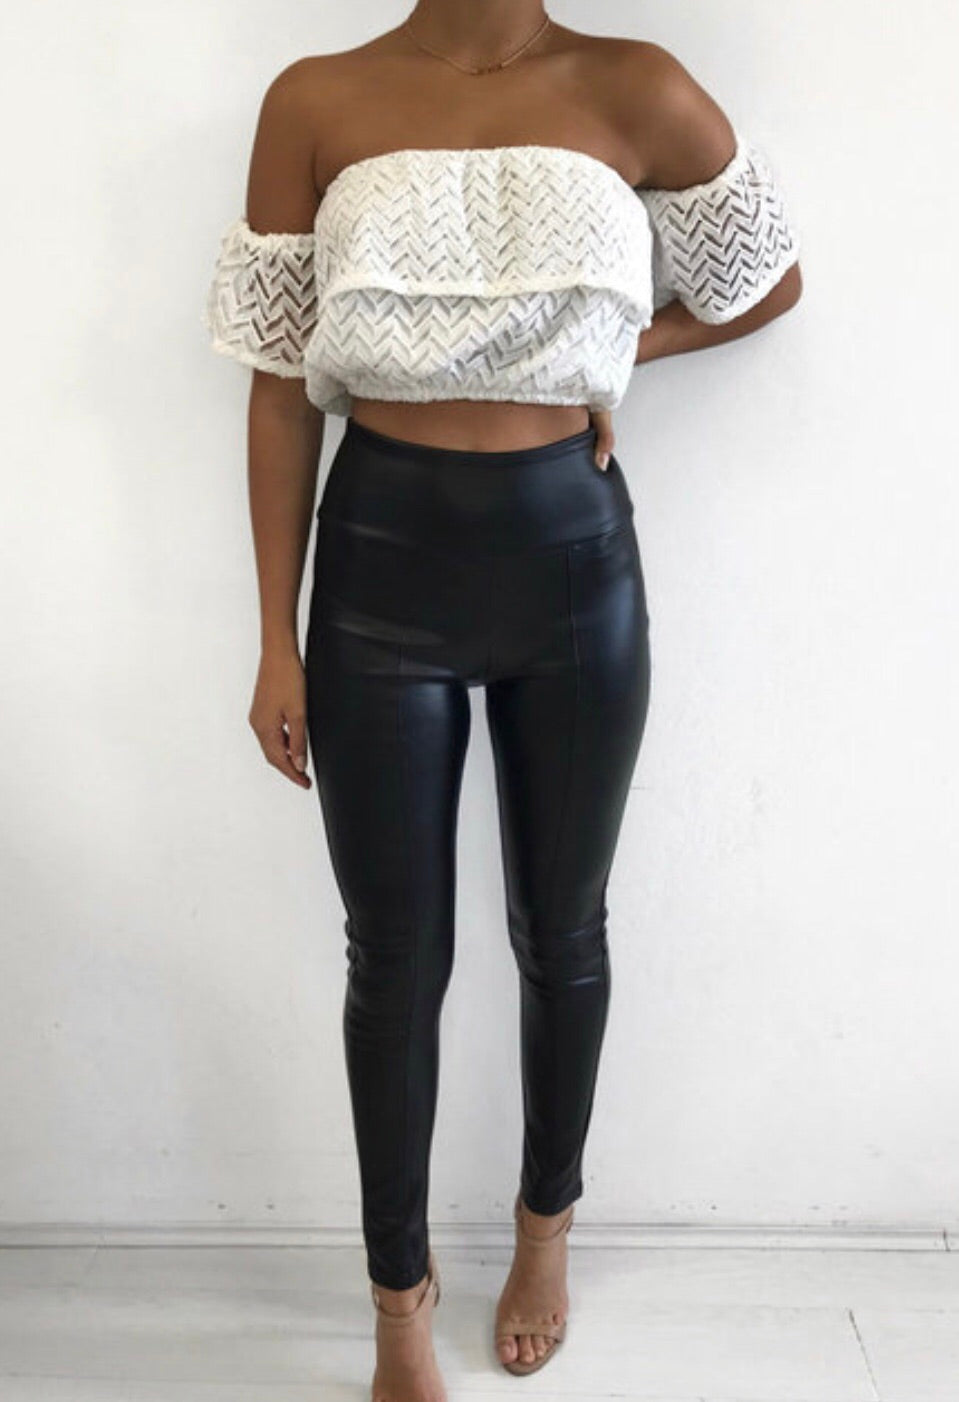 Coyote black pants